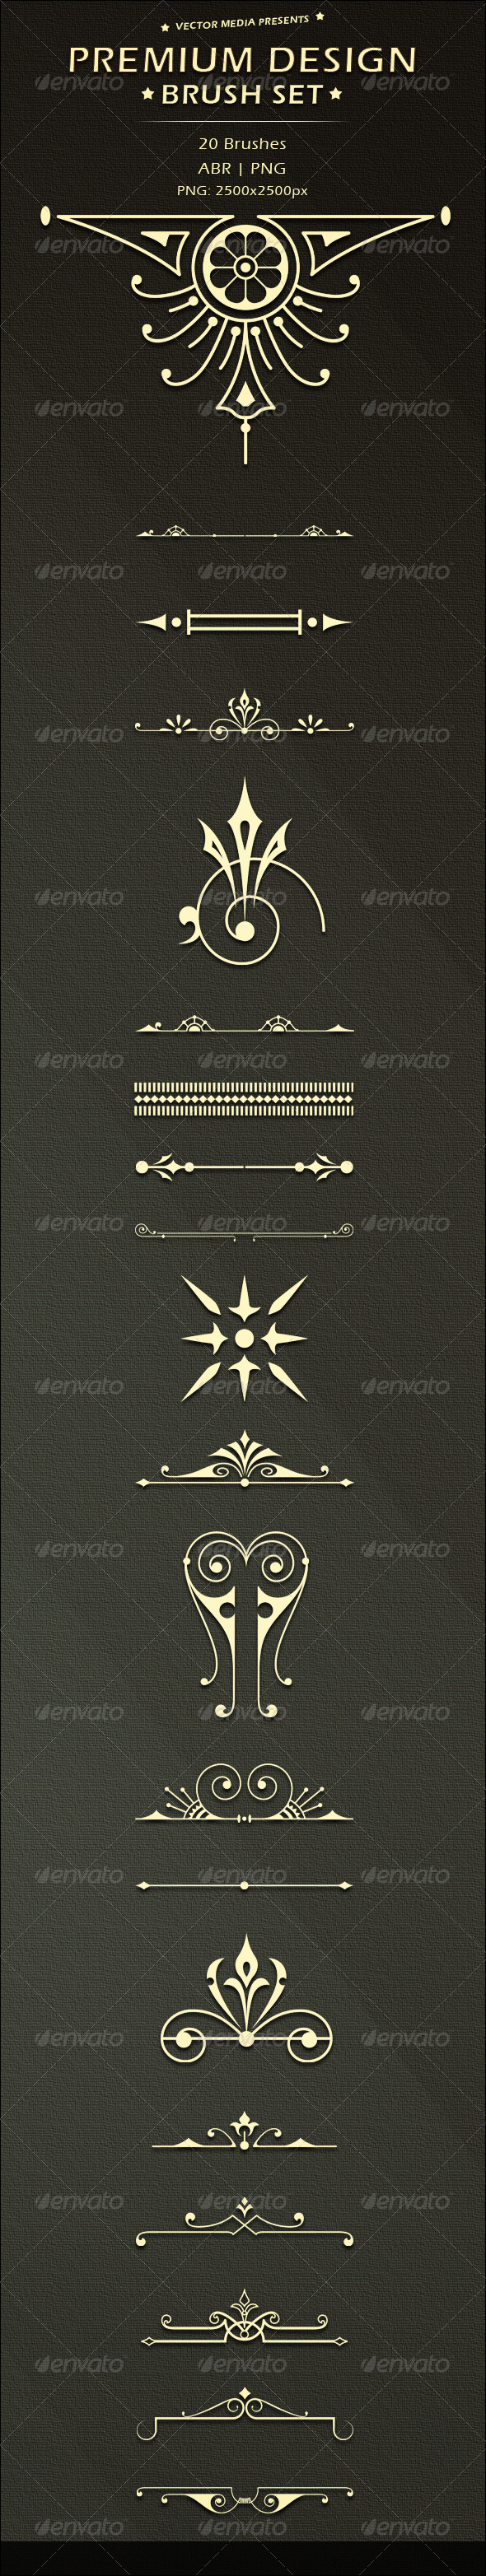 GraphicRiver Premium Design Brush Set 3619392